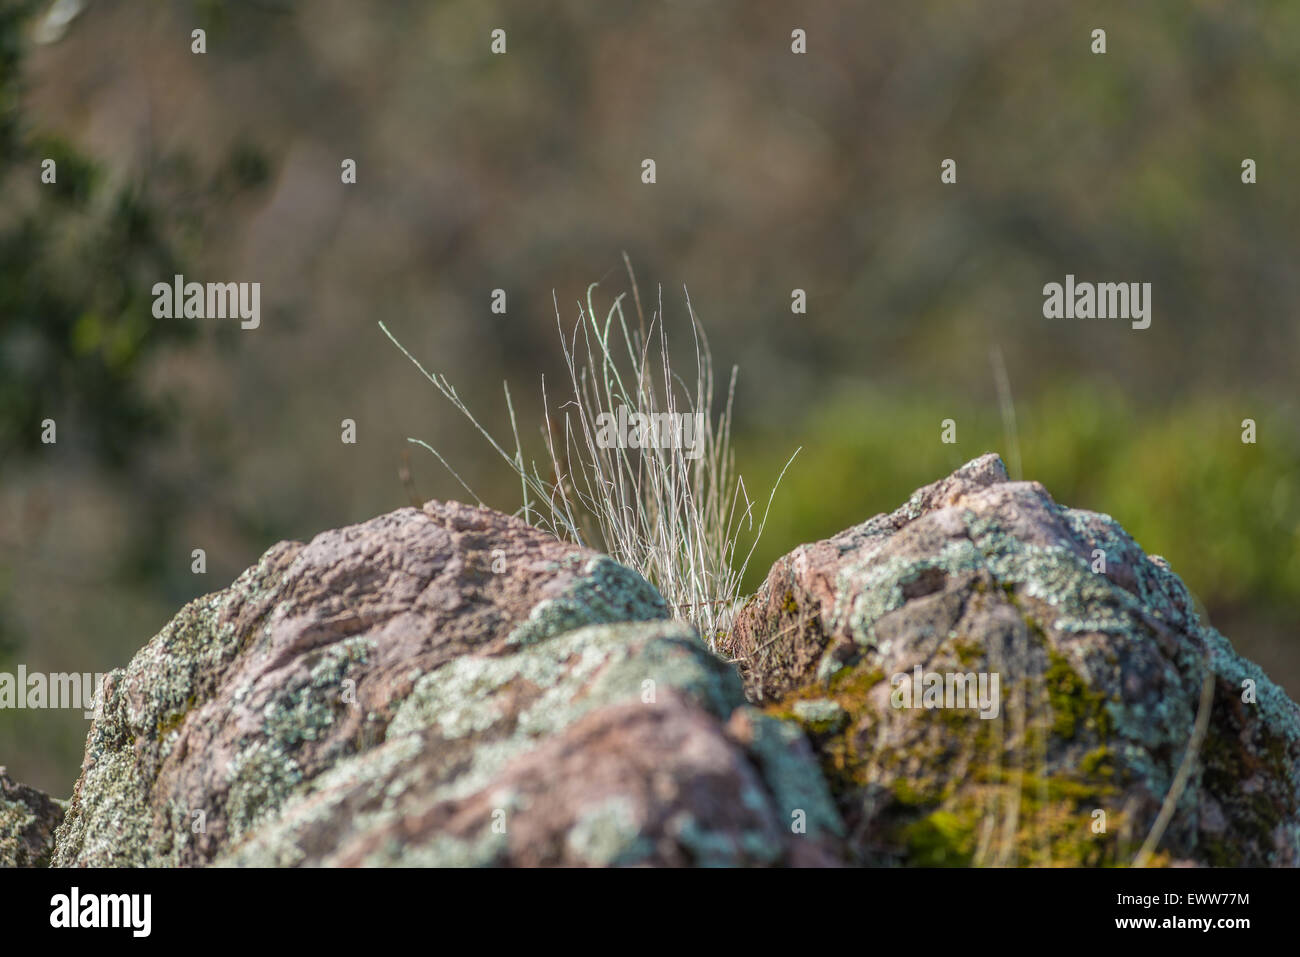 Joining rock formations grass growing in between - Stock Image